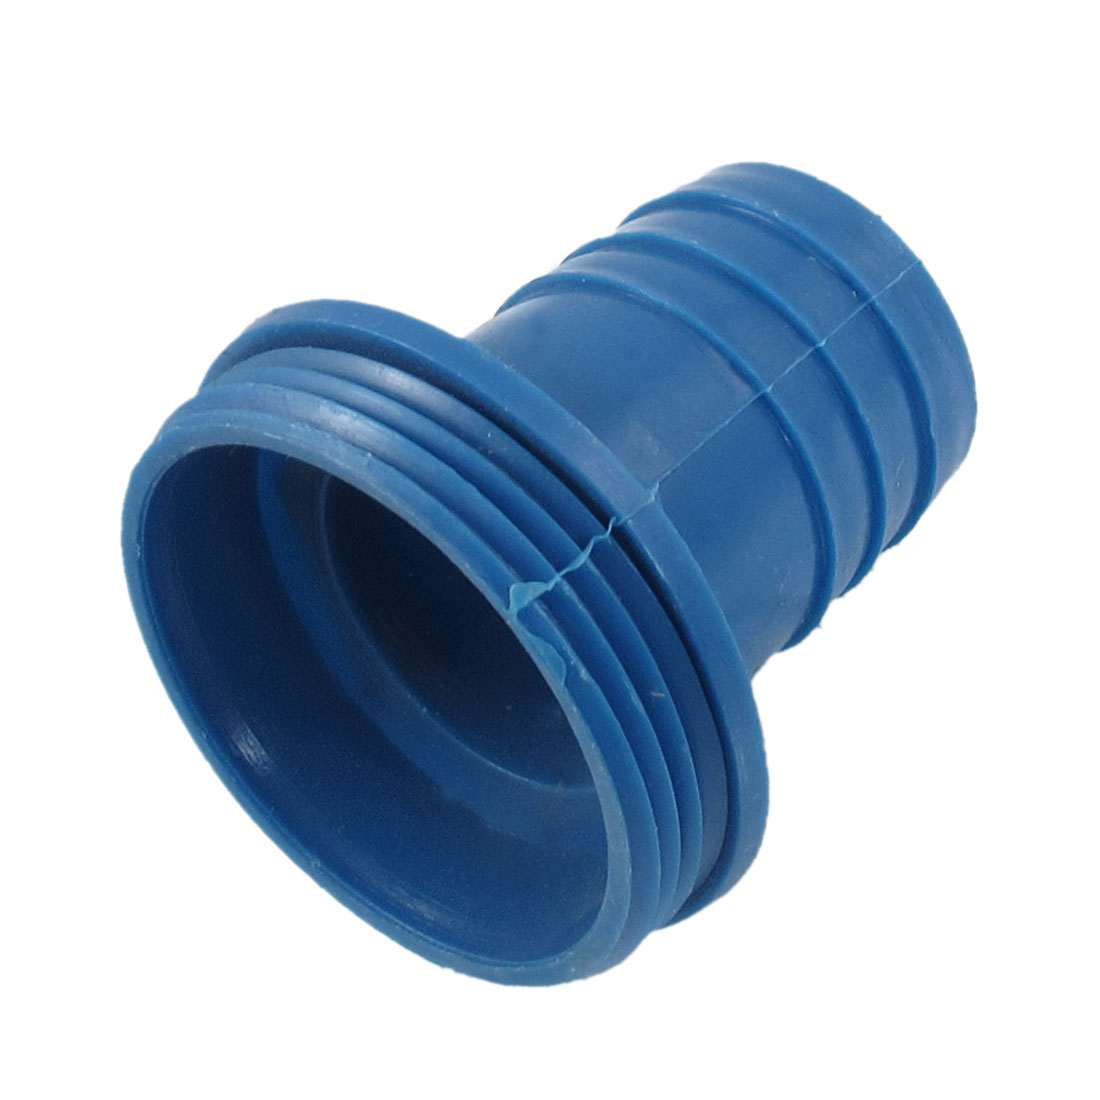 Unique Bargains 56mm Male Thread Blue Plastic Straight Bard Hose Connector for 36mm Tube